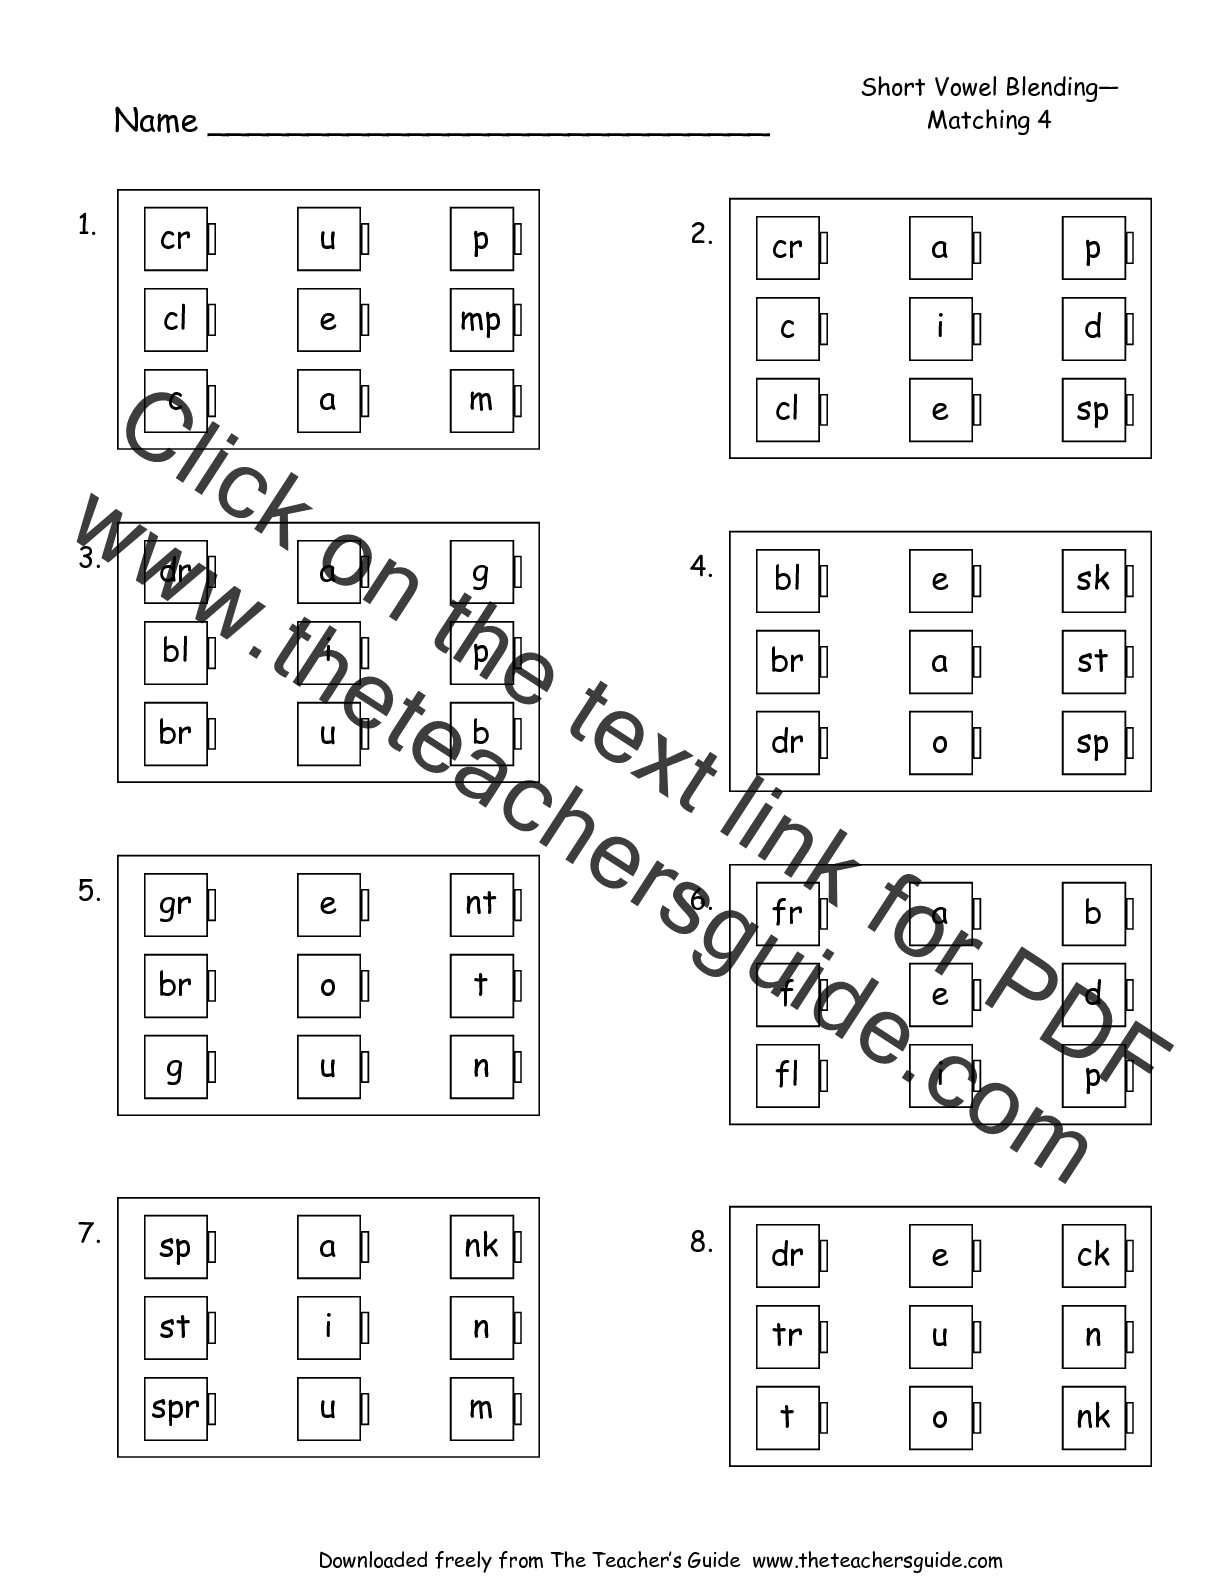 worksheet Short Vowels Worksheets short vowel phonics worksheets free library download printouts from the teachers guide vowels